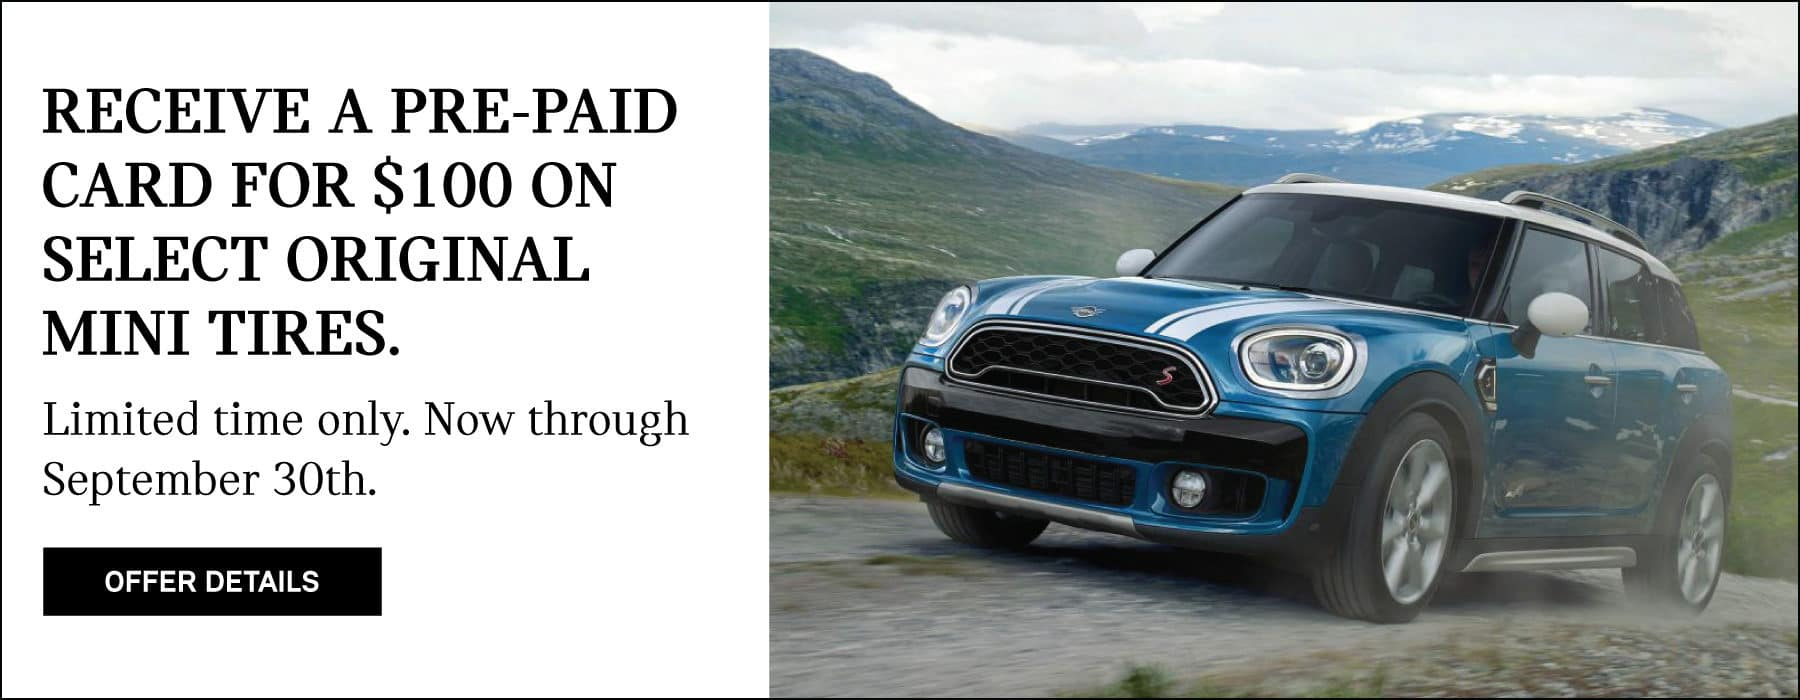 RECEIVE A PRE-PAID CARD FOR $100 ON SELECT ORIGINAL MINI TIRES. LIMITED TIME ONLY. NOW THROUGH SEPTEMBER 30TH. OFFER DETAILS BUTTON. SEE DEALER FOR COMPLETE DETAILS.